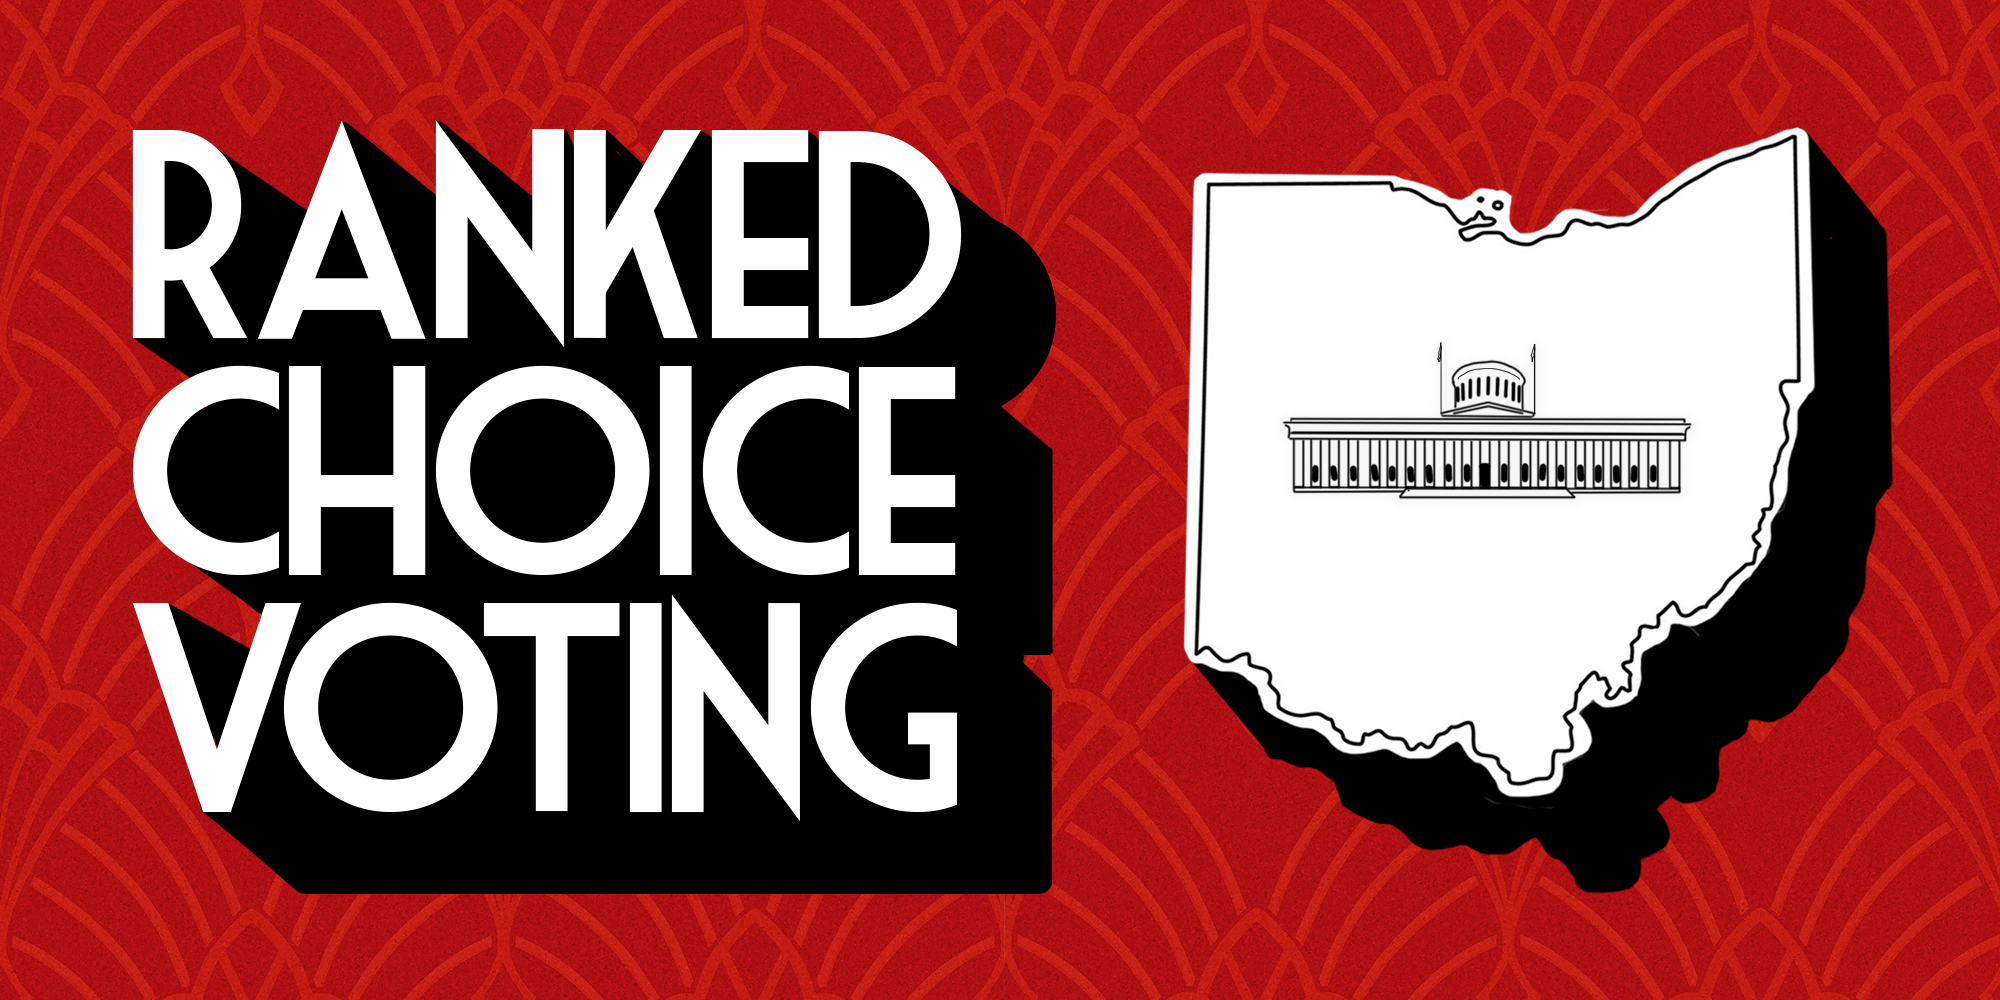 The forgotten results & future promise of ranked choice voting in Ohio